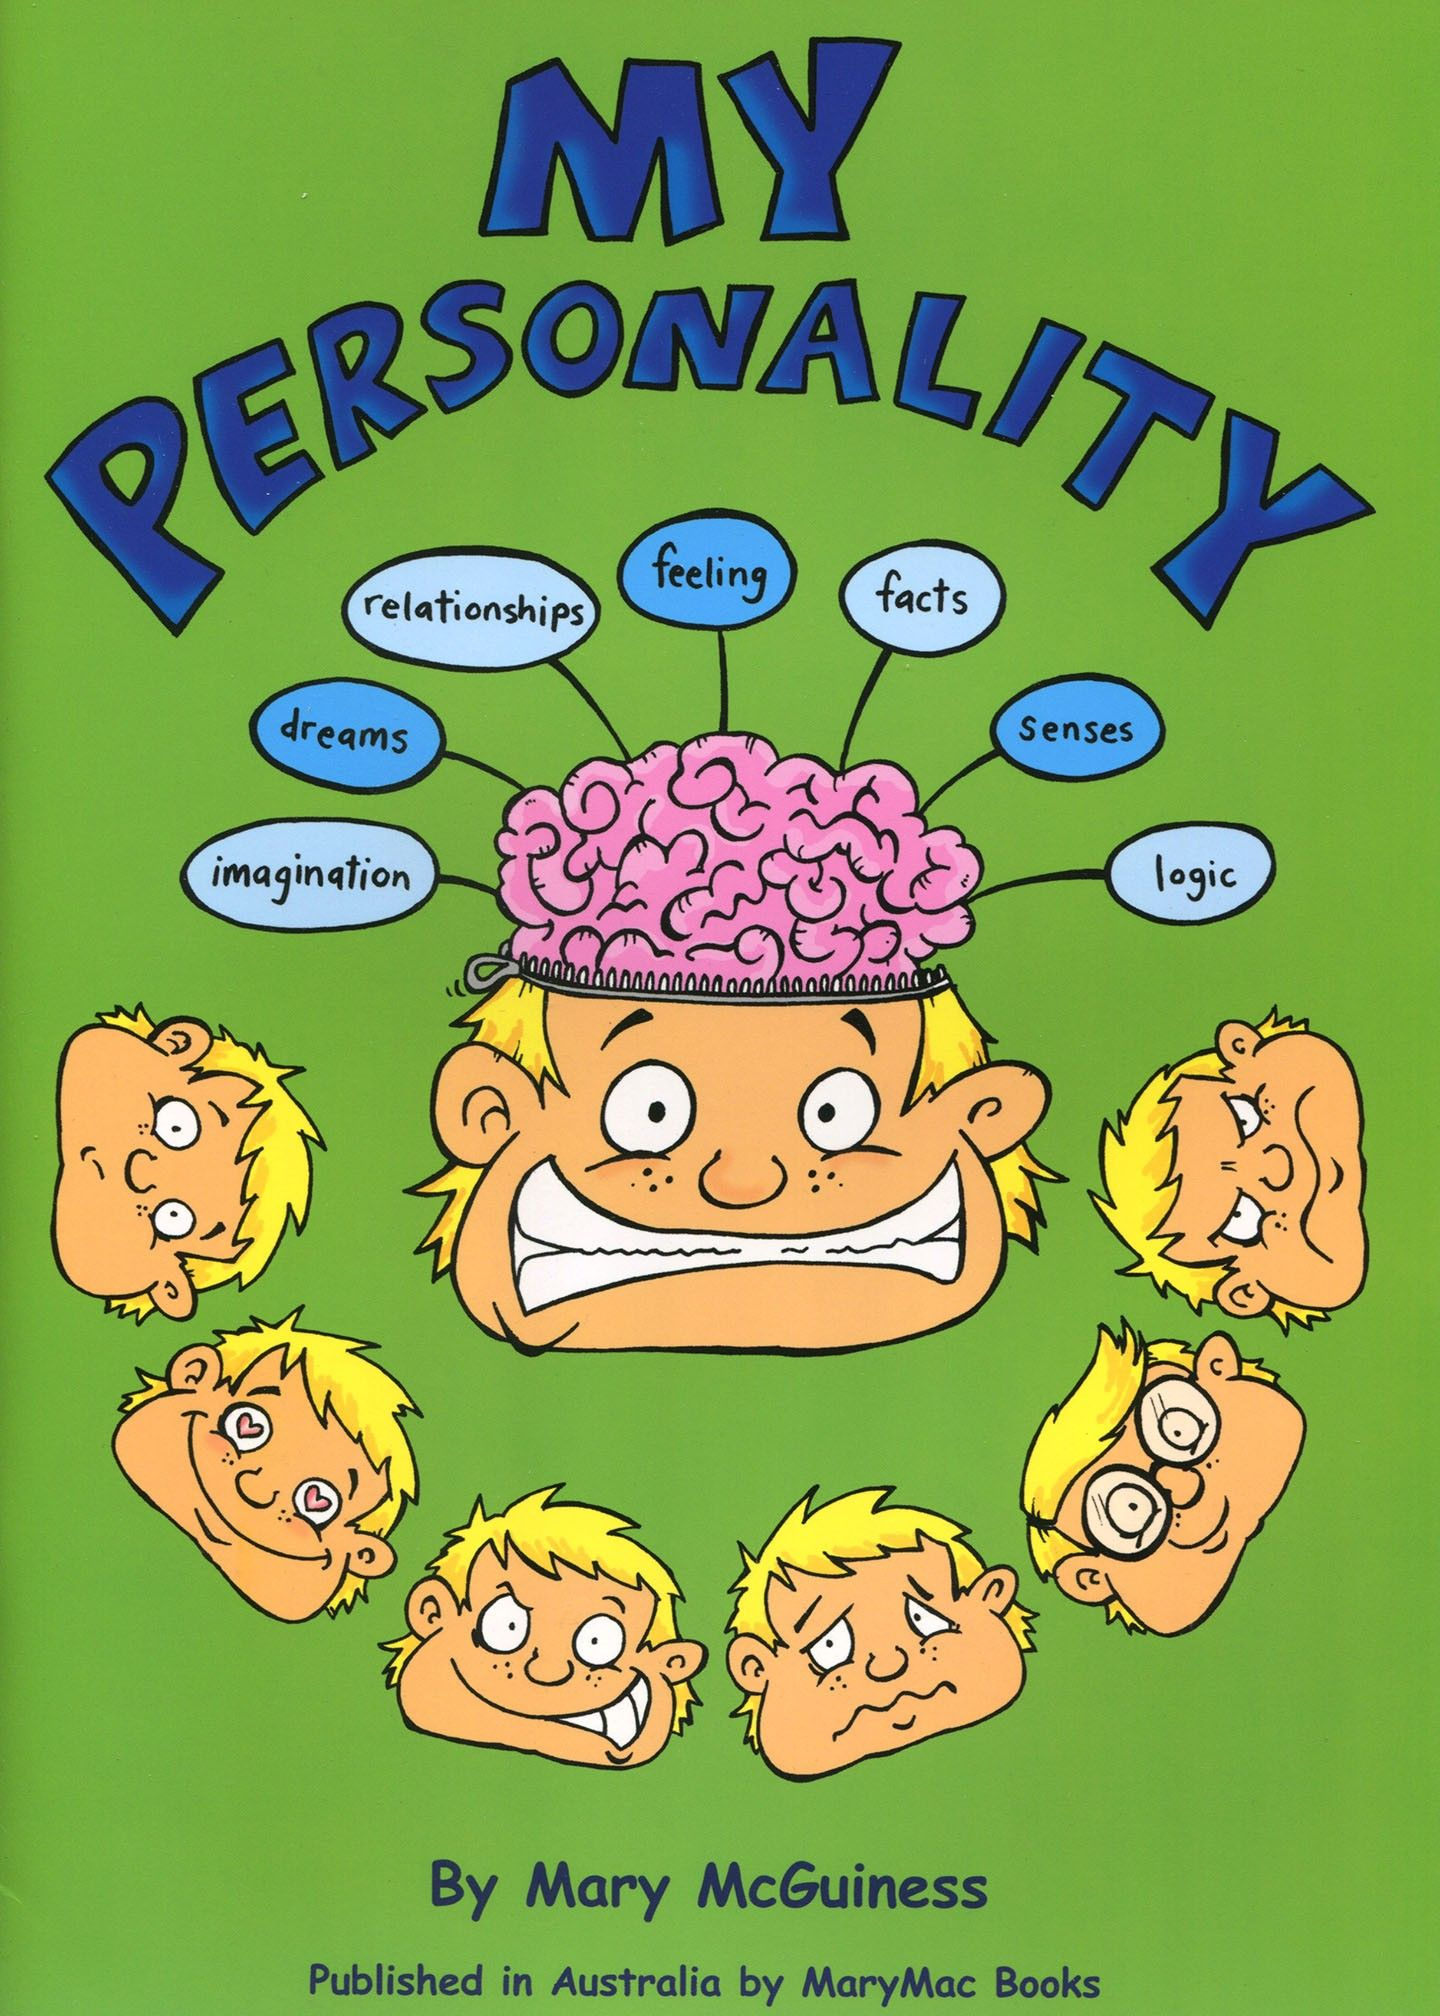 My Personality Mbti For Kids